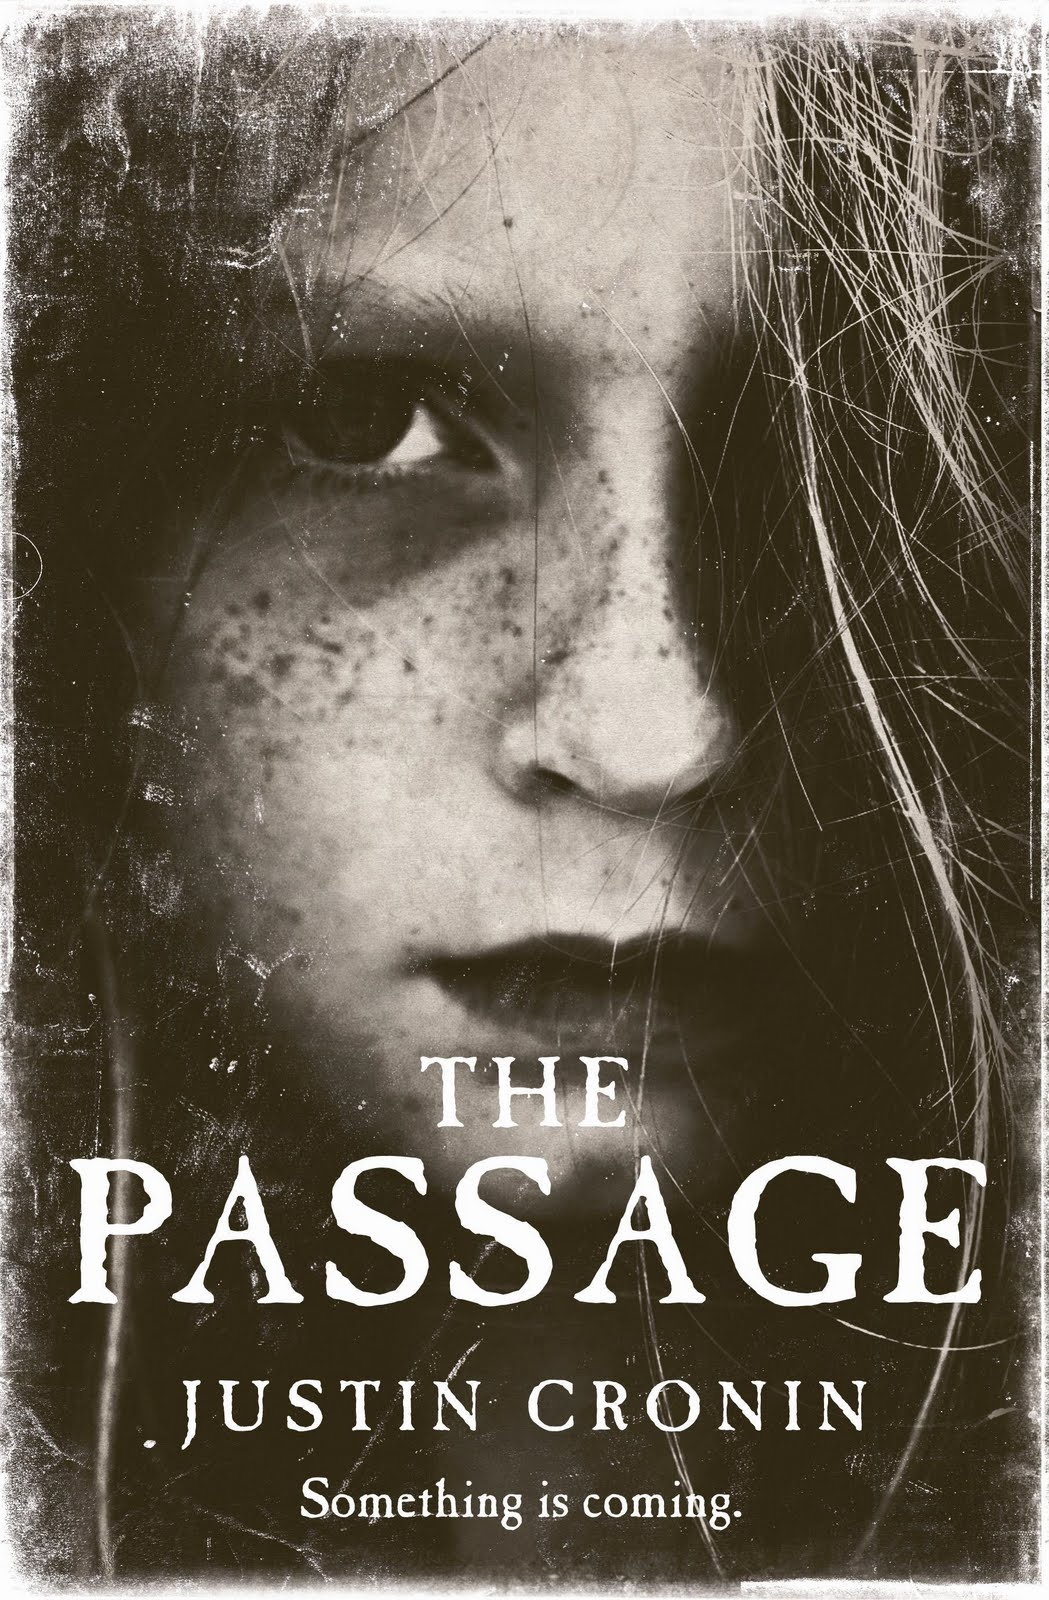 The Passage by Justin Cronin – Walker of Worlds